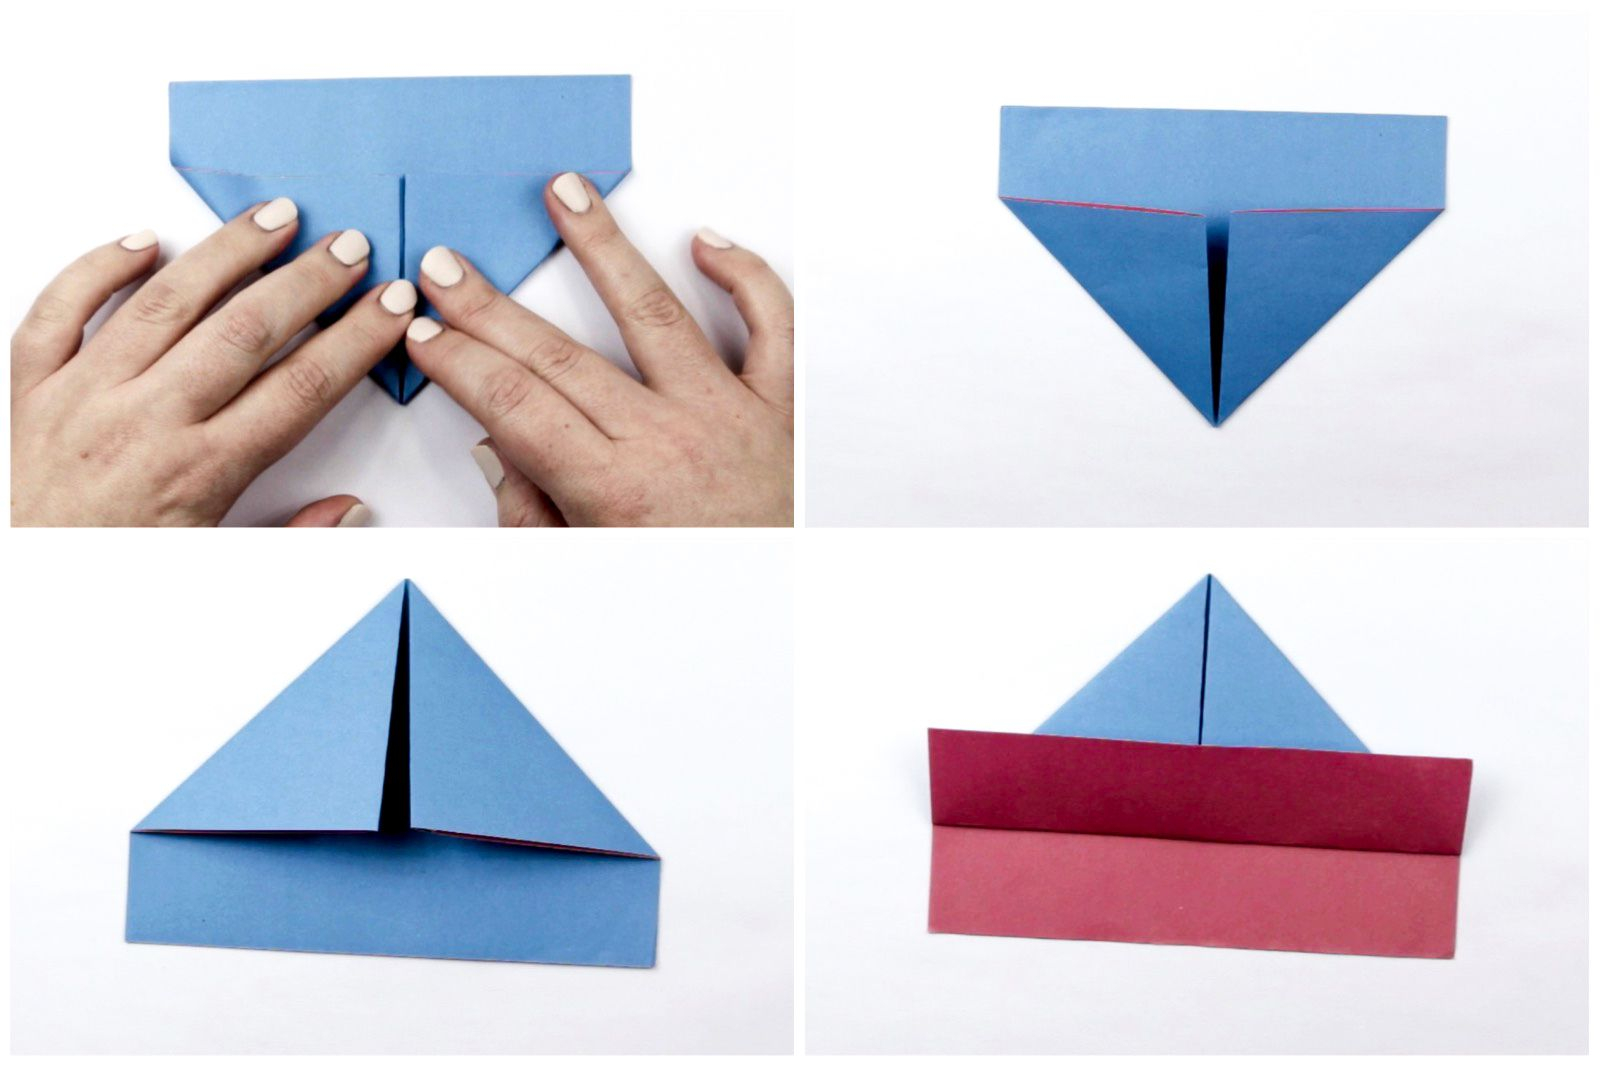 Home crafts you can make with paper How To Make An Easy Origami Boat